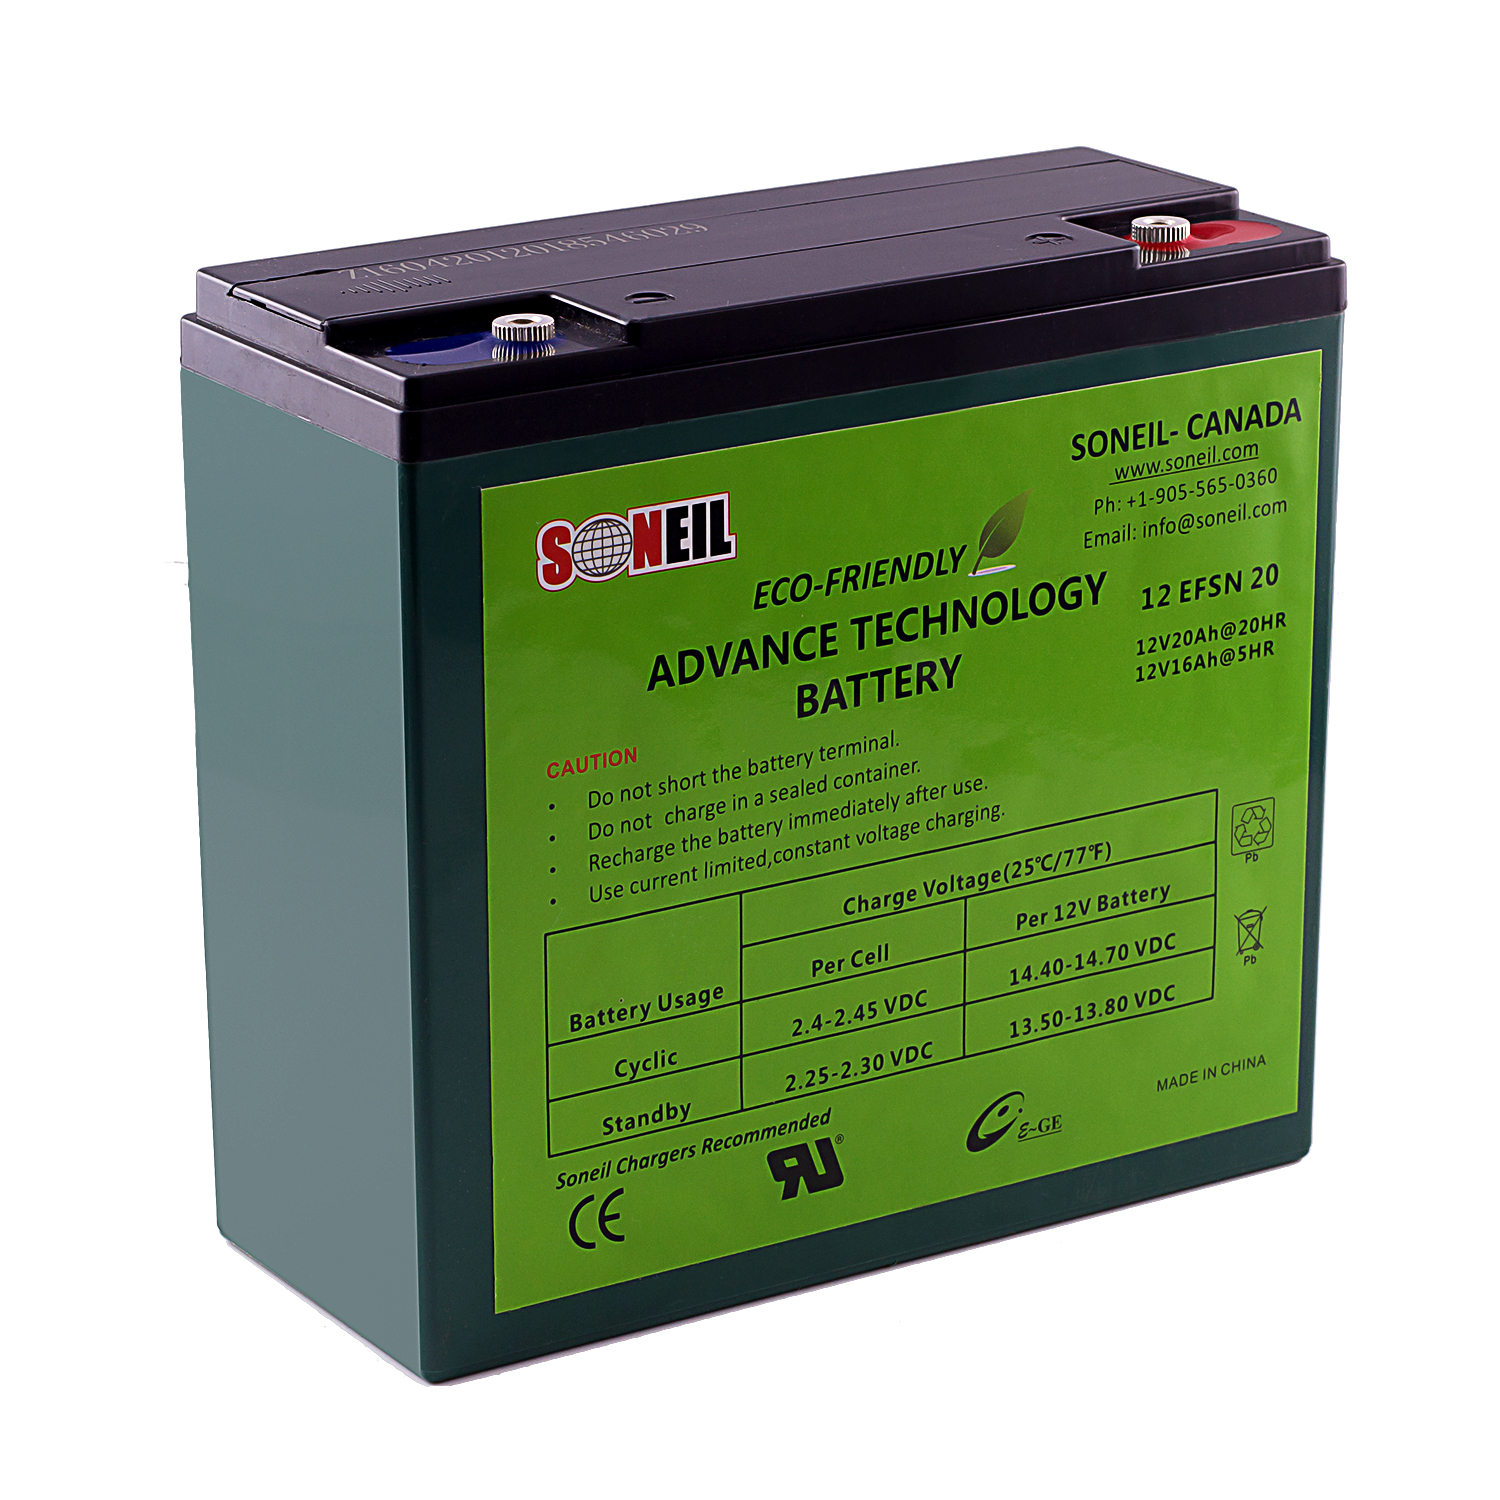 12V 20 Ah Advance Technology Battery